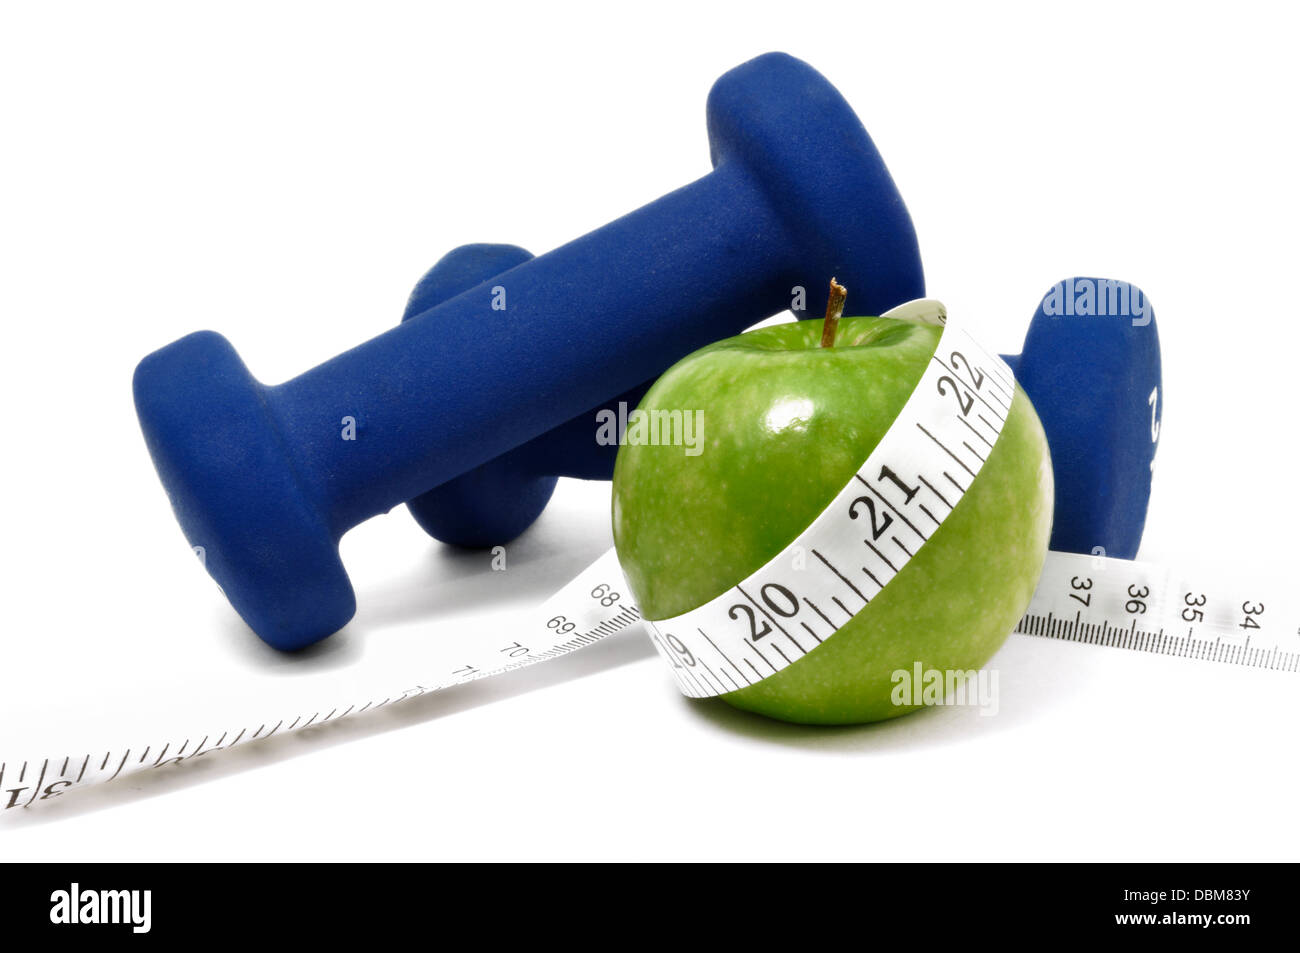 Weights, apple, and tape measure - dieting / healthy living concept - Stock Image